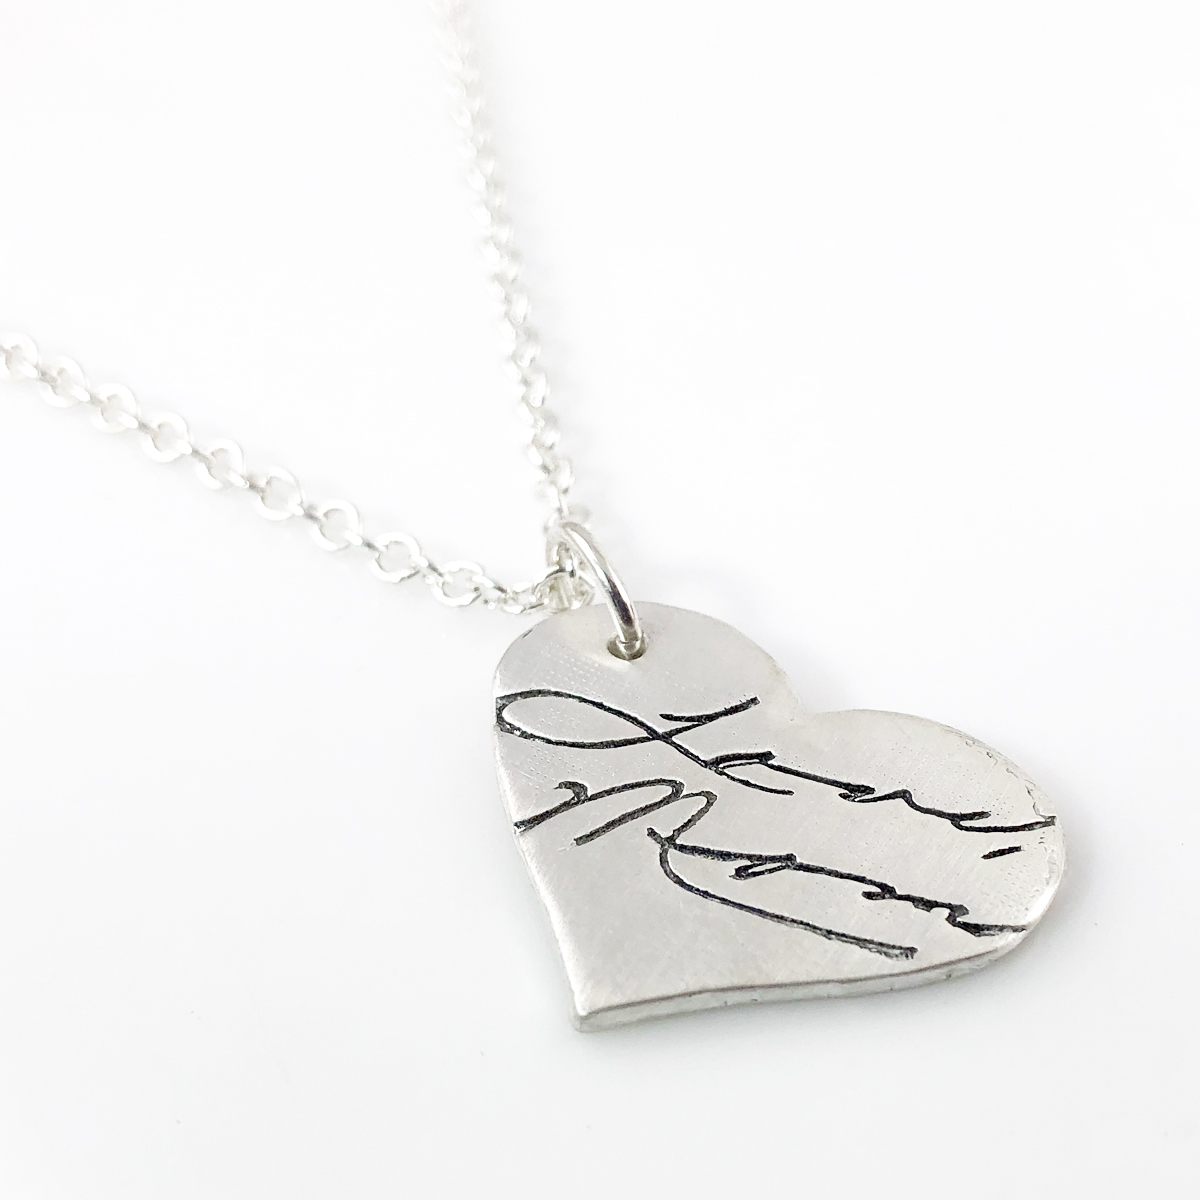 Actual Handwriting Necklace - shown on cable chain